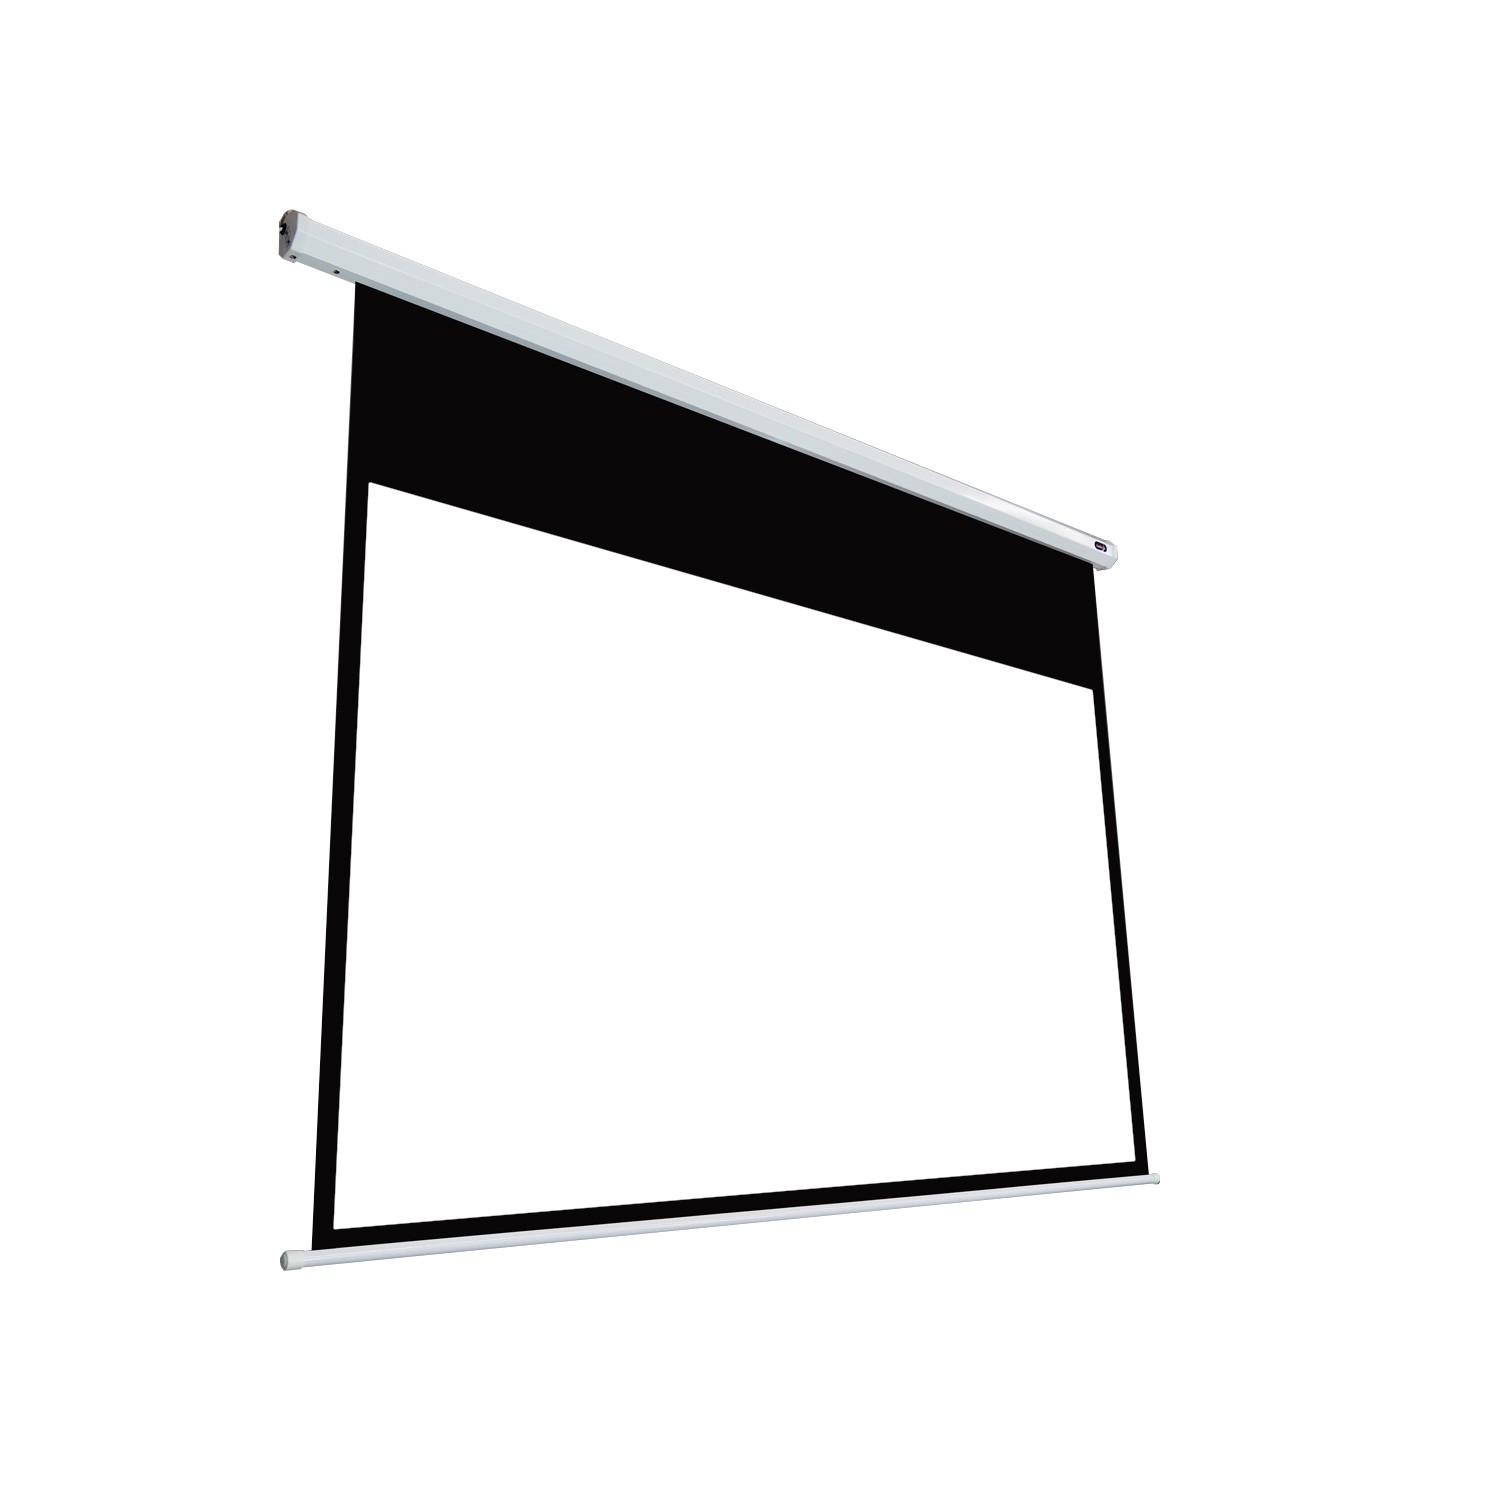 "106"" Elunevision Motorized Projection Screen EV-J-106-1.2"